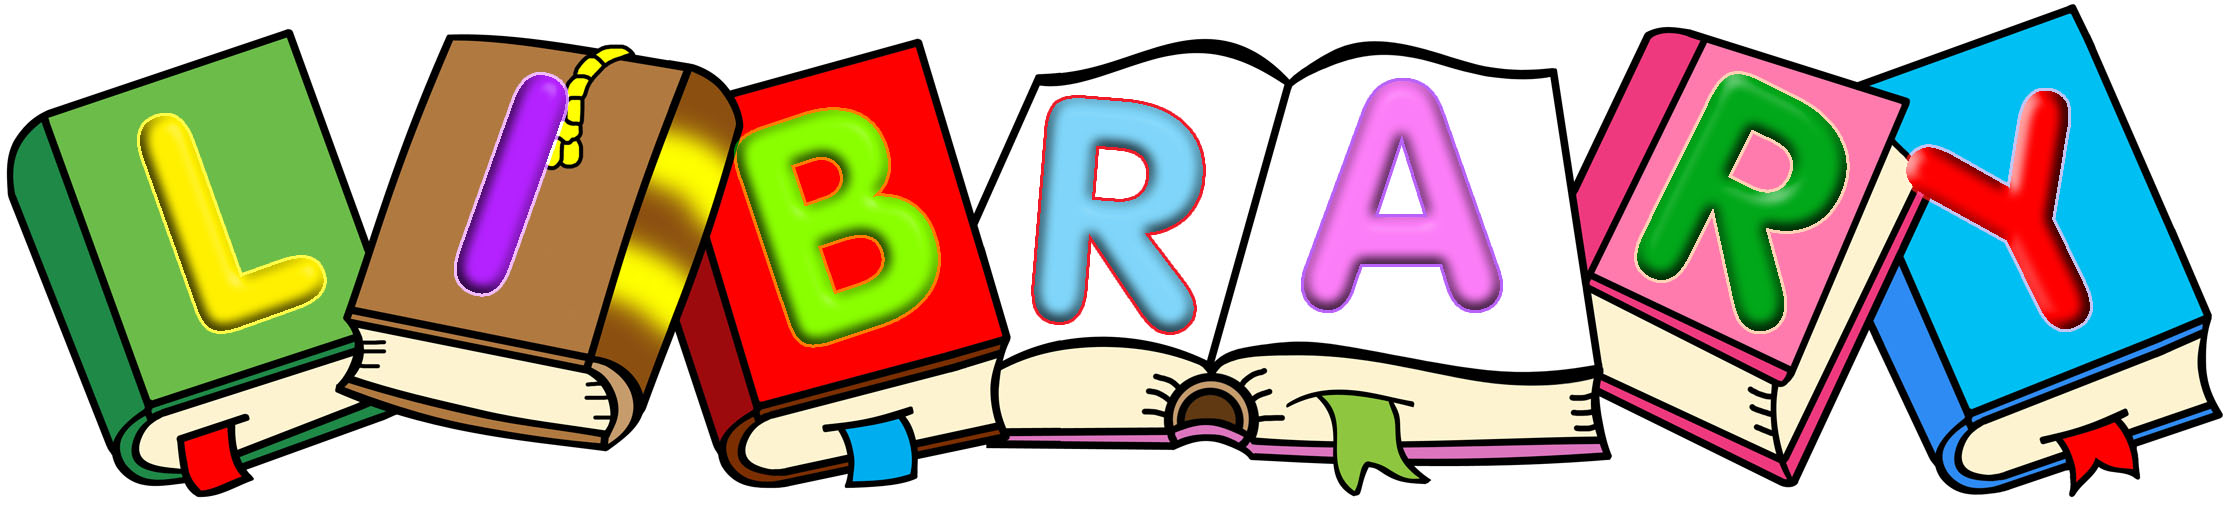 Free Library Cliparts, Download Free Clip Art, Free Clip Art.